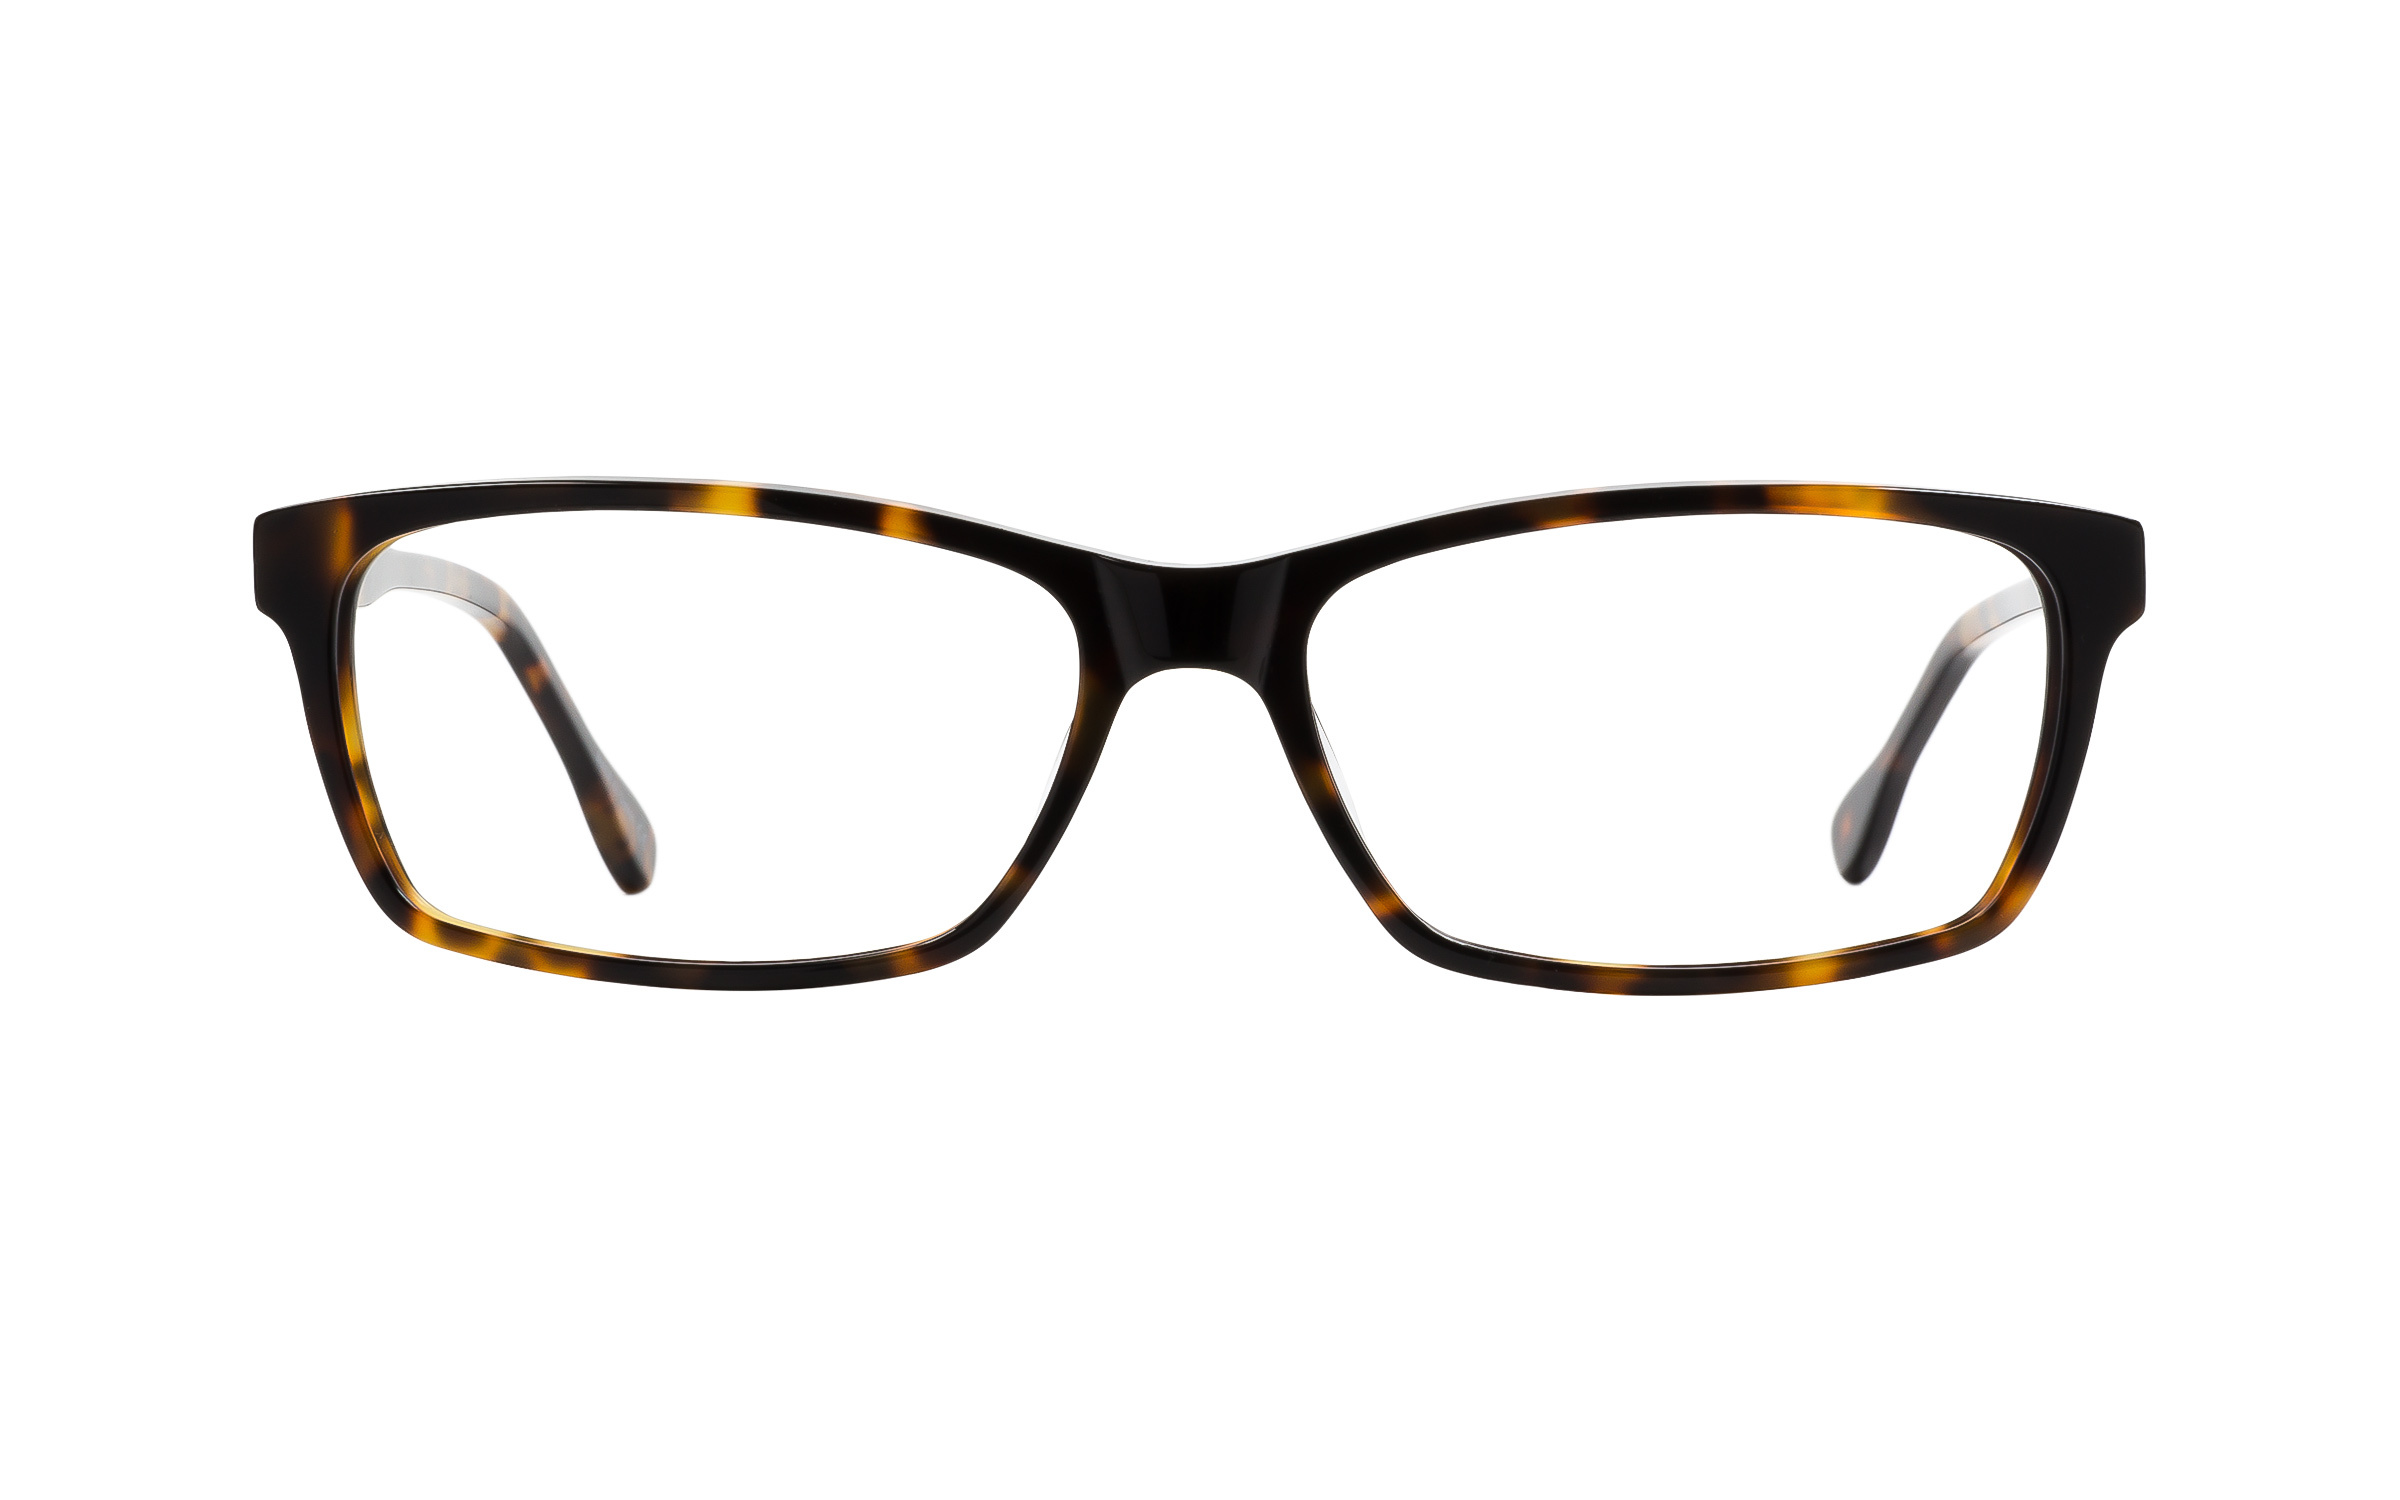 Womens_Rectangular_Glasses_Brown_7_for_All_Mankind_Online_Coastal